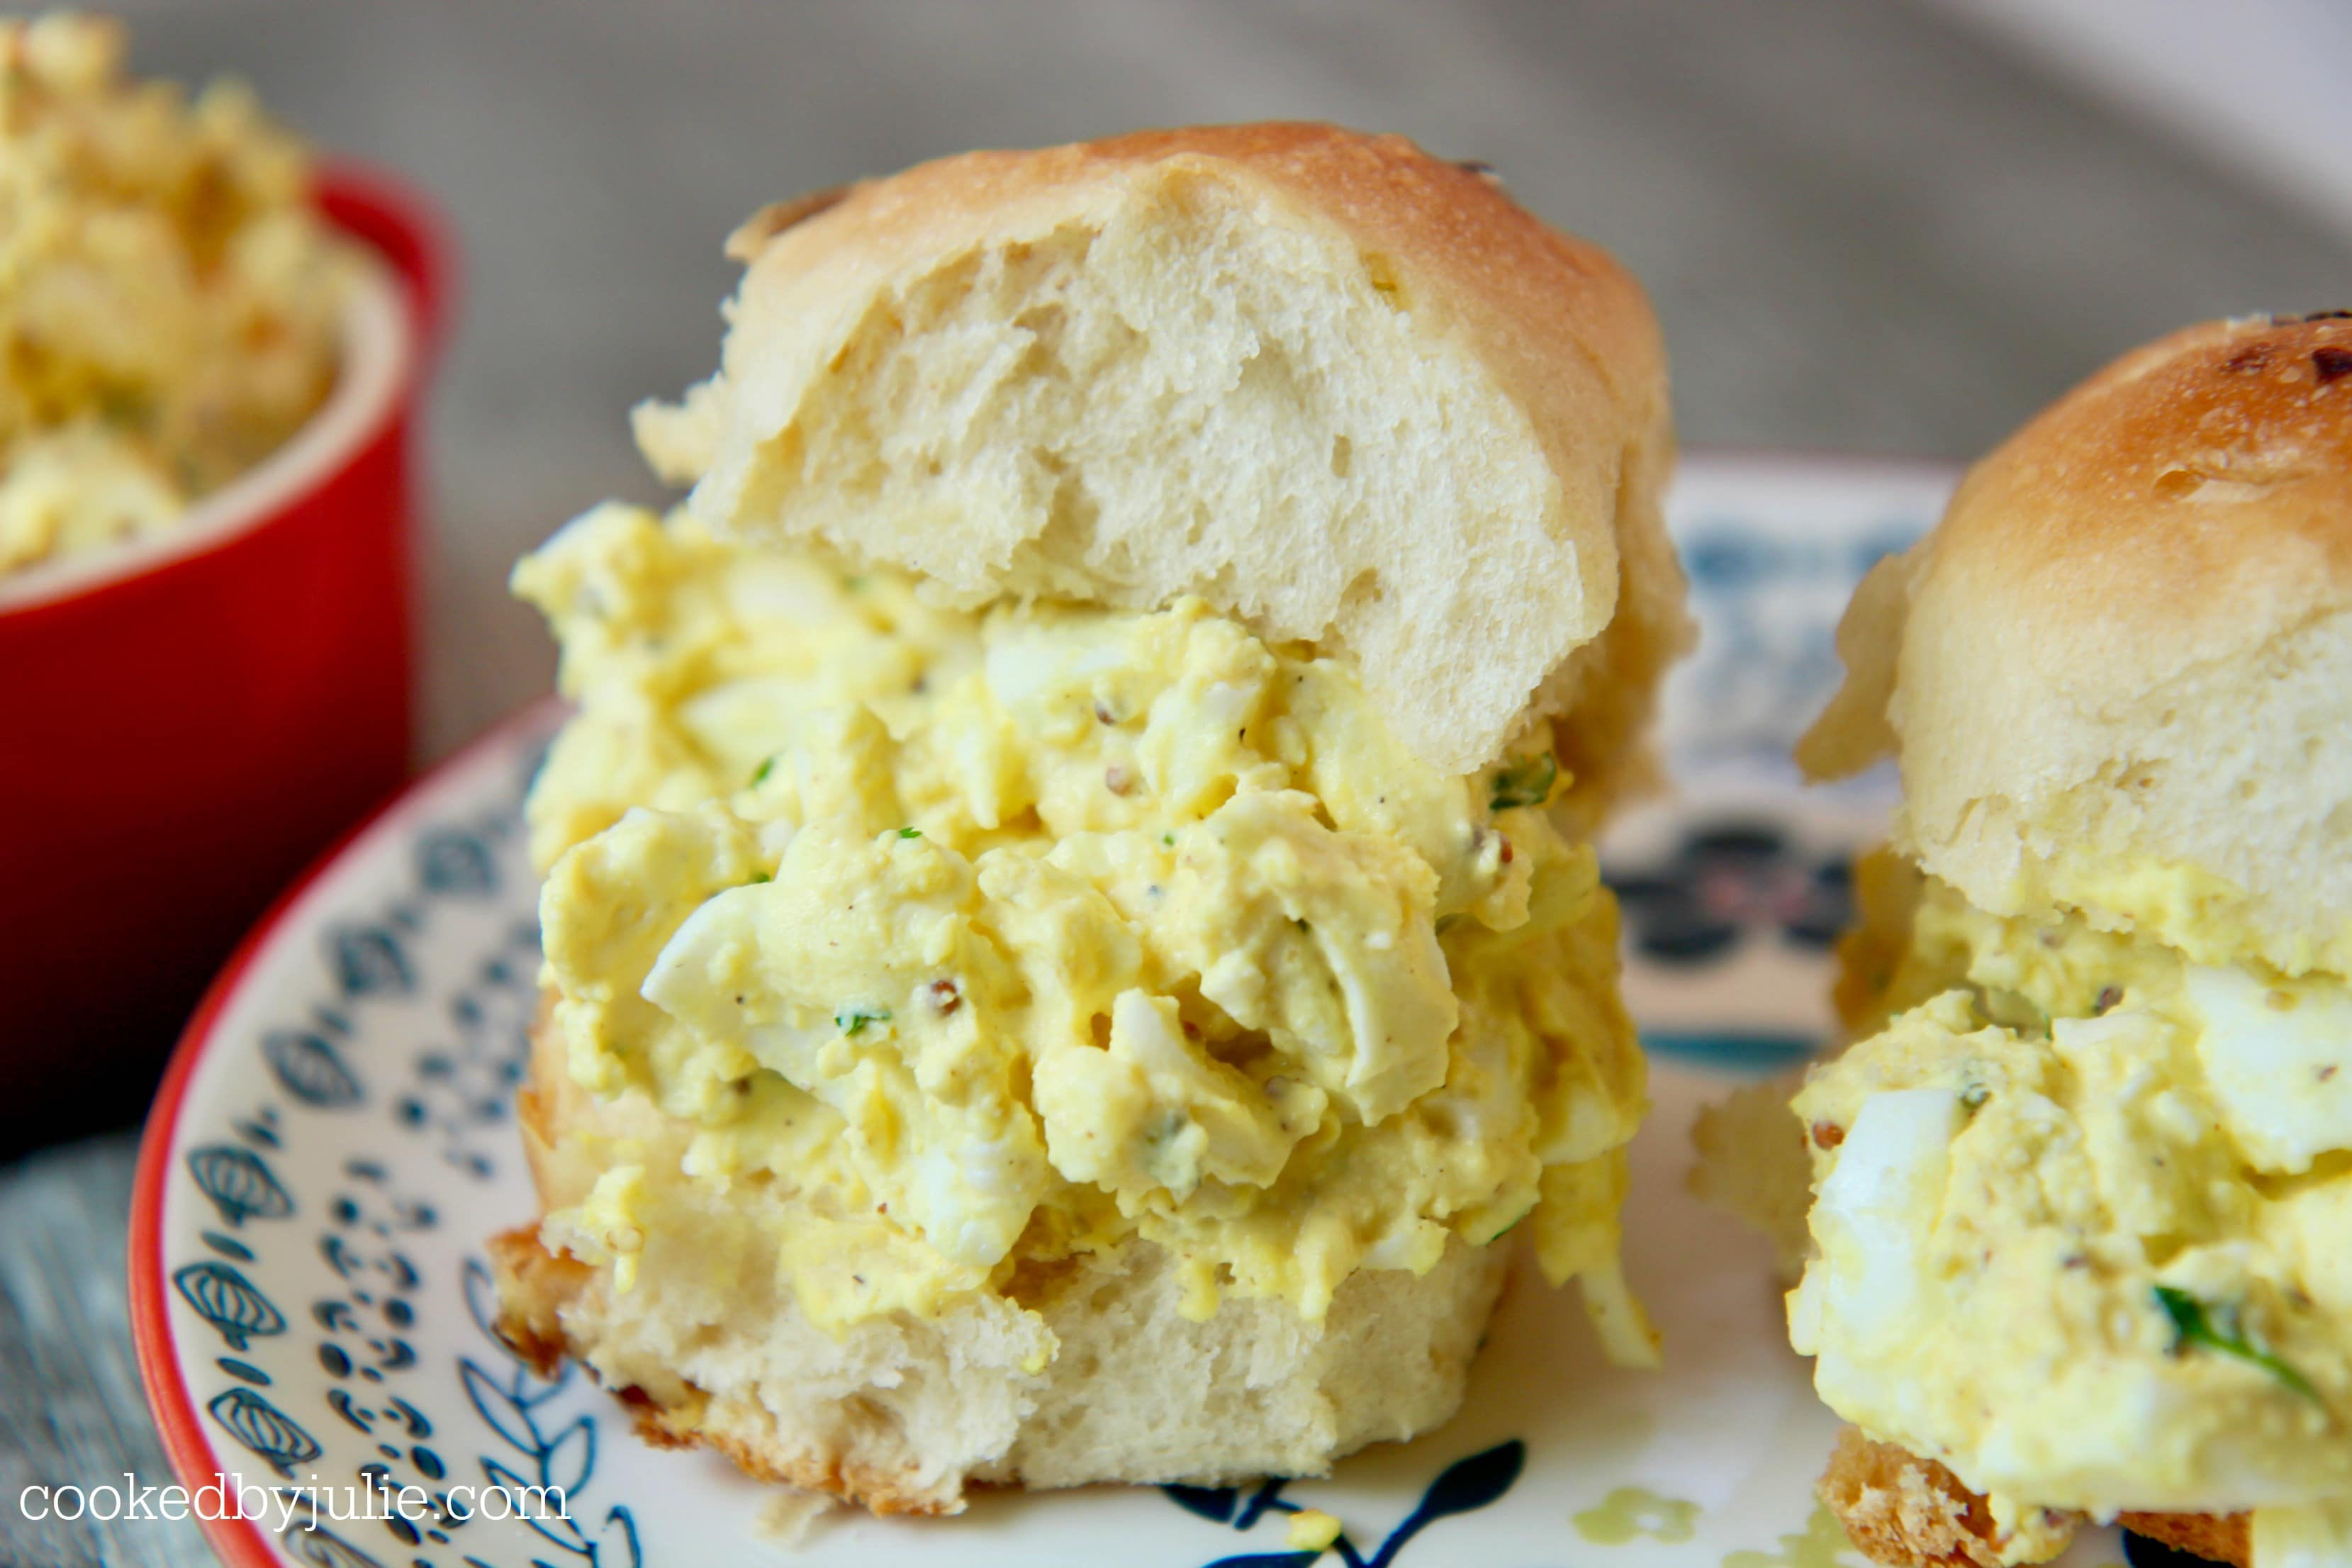 Egg salad sandwiches are a perfect busy weeknight meal or picnic lunch.